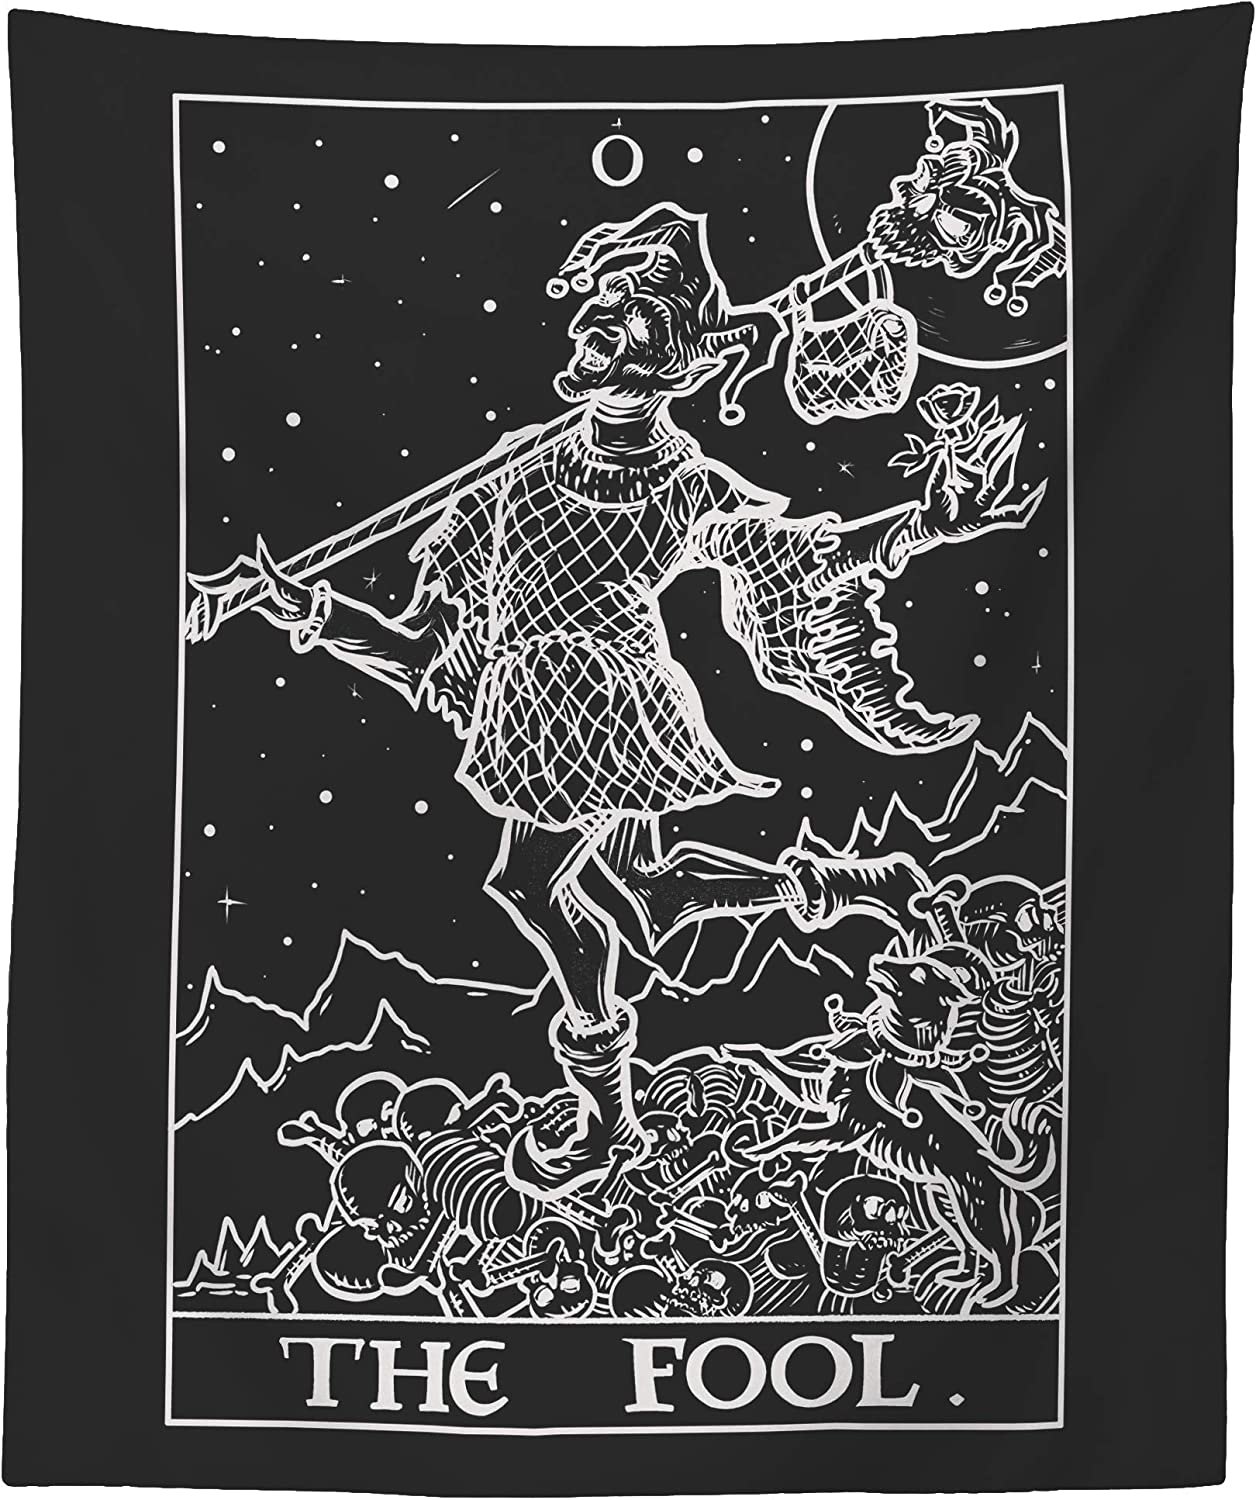 The Fool Tarot Card Tapestry (Black & White) - Court Jester - Gothic Halloween Home Decor Wall Hanging (60